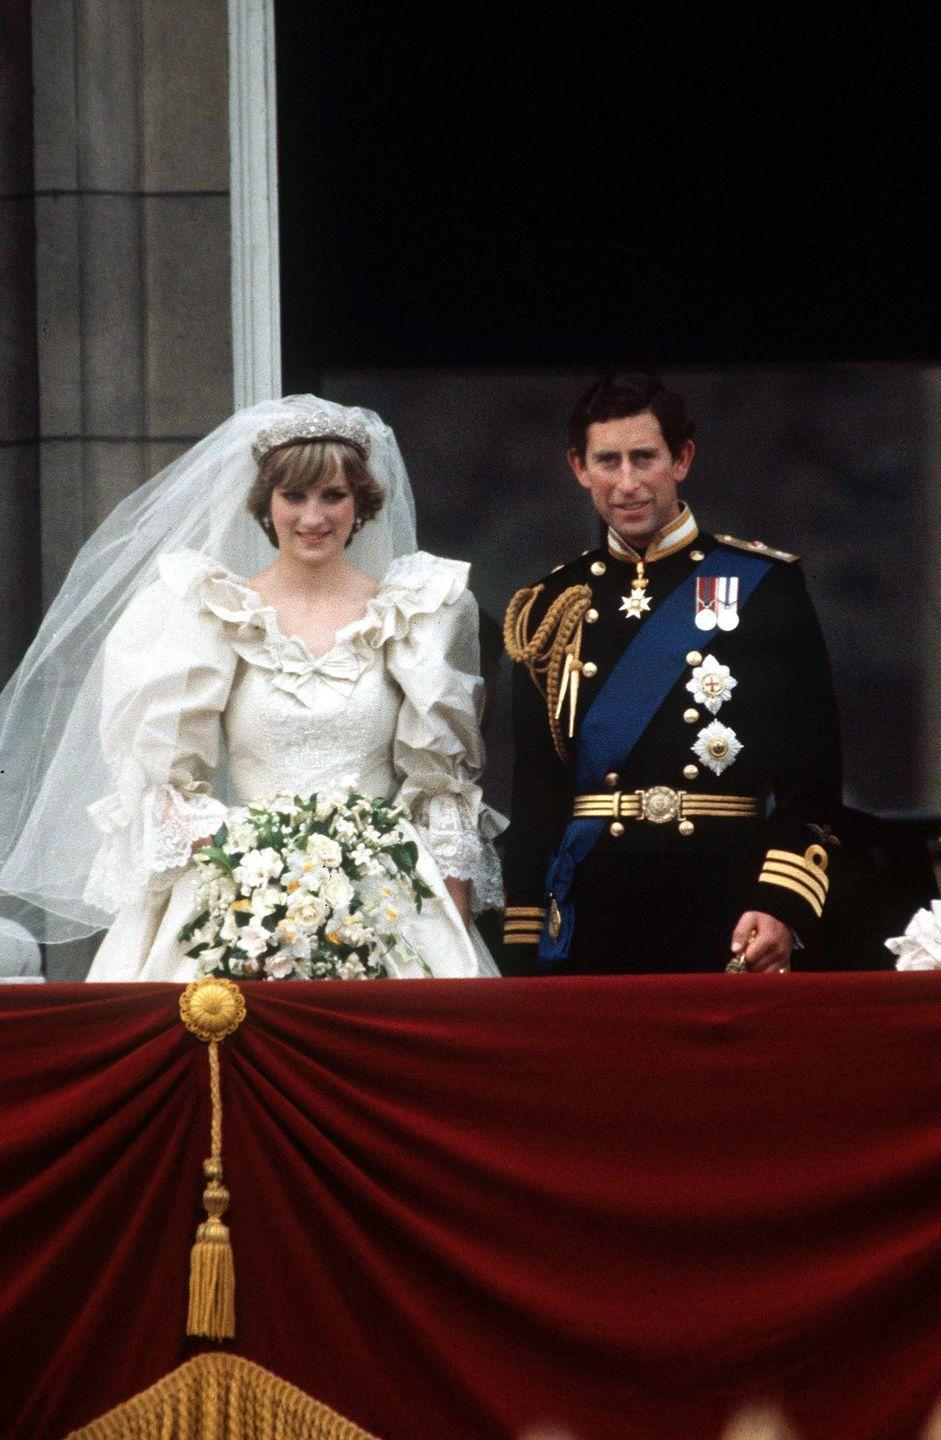 "<p>Who could forget Princess Diana's 25-foot train–the longest in royal history–made by David and Elizabeth Emanuel for Alexander McQueen? While the cost of the dress is unknown, <a href=""https://www.crfashionbook.com/celebrity/g28506147/secret-moments-princess-diana-royal-wedding/?slide=11"" rel=""nofollow noopener"" target=""_blank"" data-ylk=""slk:Prince Charles and Princess Diana's total wedding cost"" class=""link rapid-noclick-resp"">Prince Charles and Princess Diana's total wedding cost</a> was an estimated $48 million. This royal couple divorced in 1996 after 15 years of marriage. </p>"